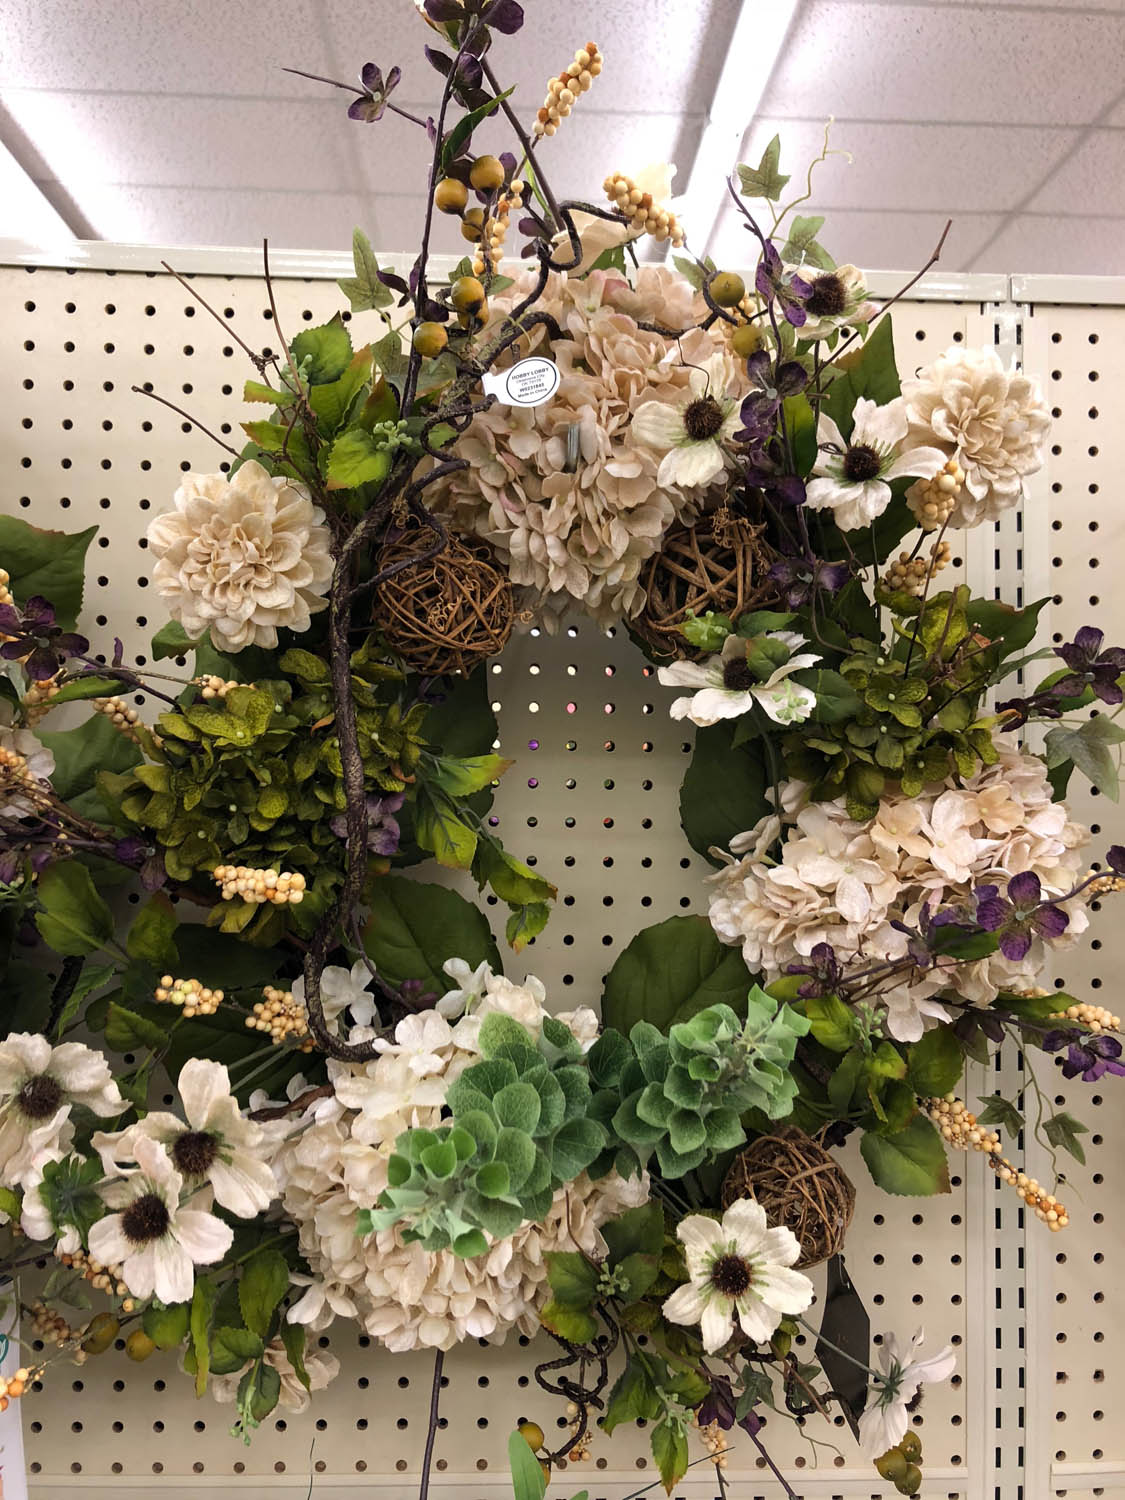 ready made wreath at hobby lobby store for sale expensive